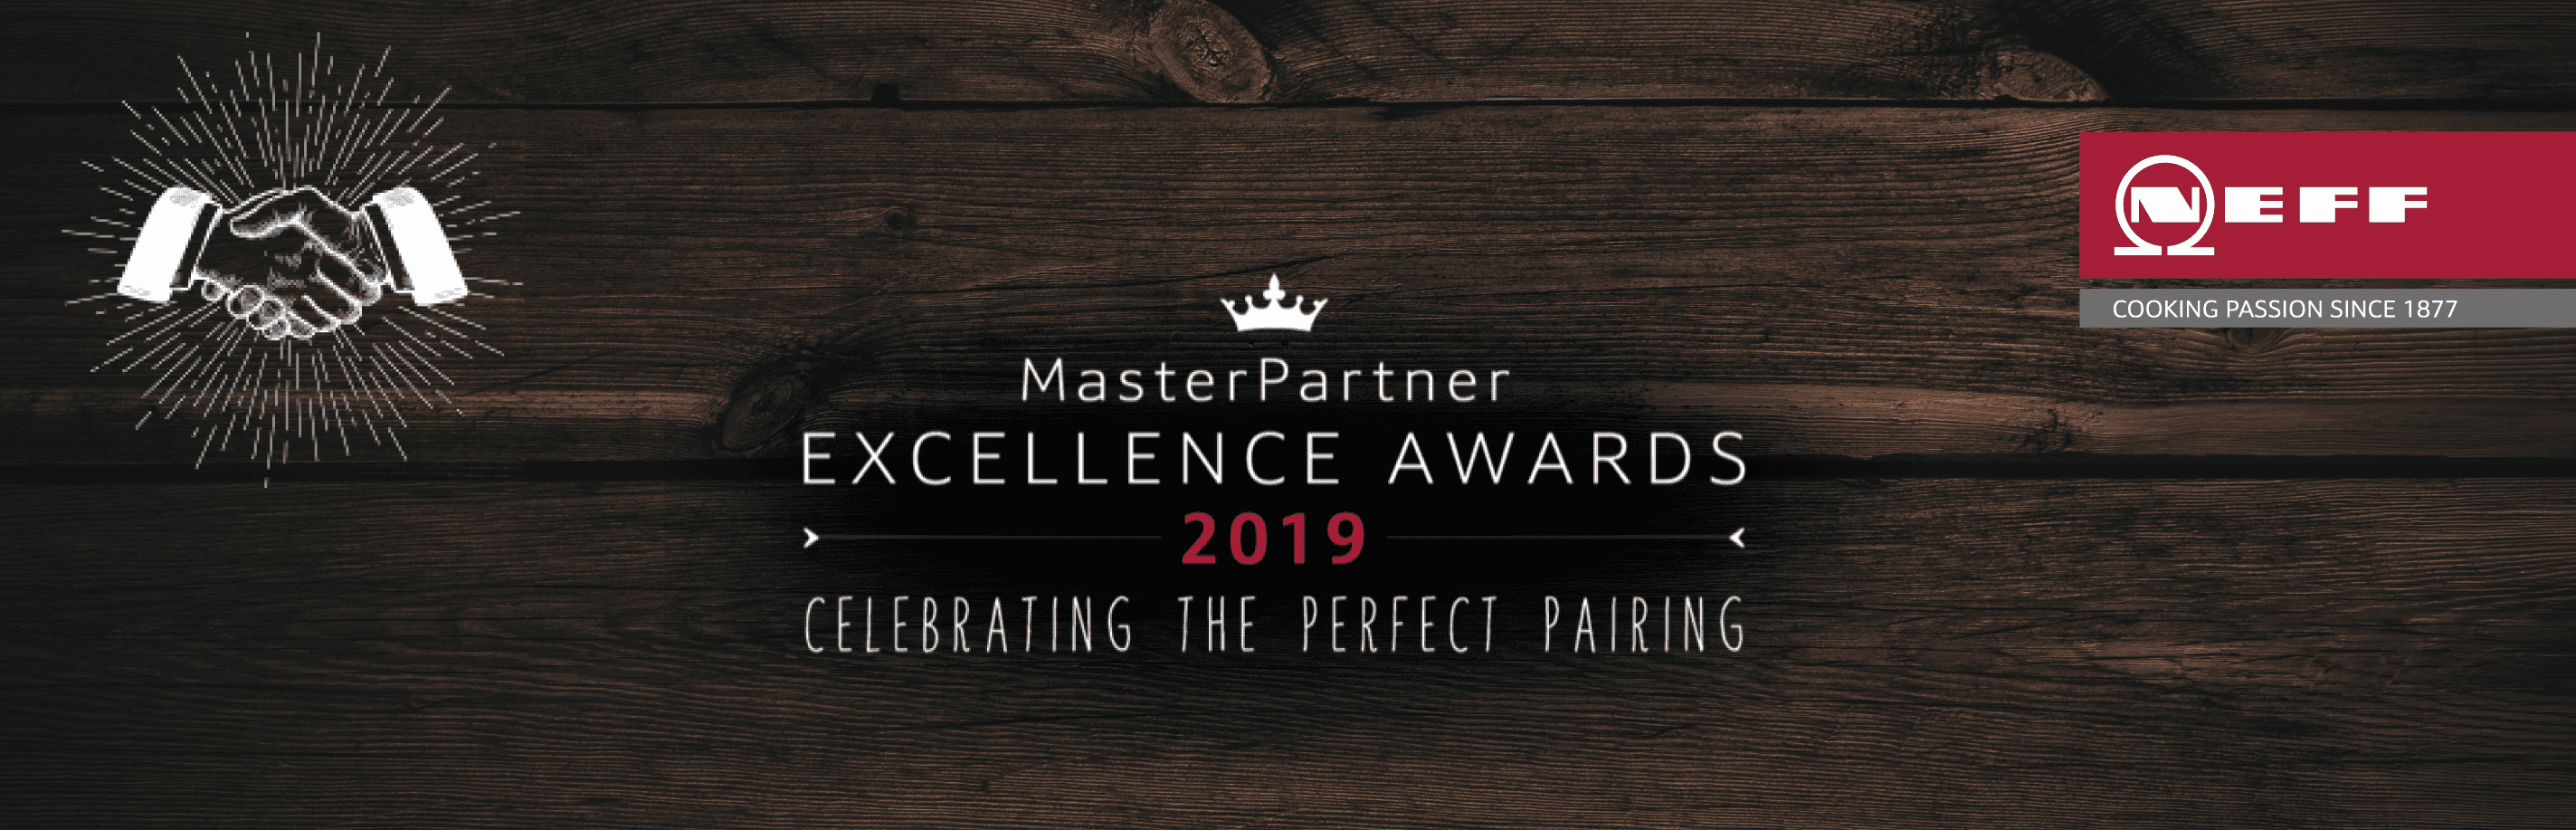 Neff MasterPartner Excellence Award